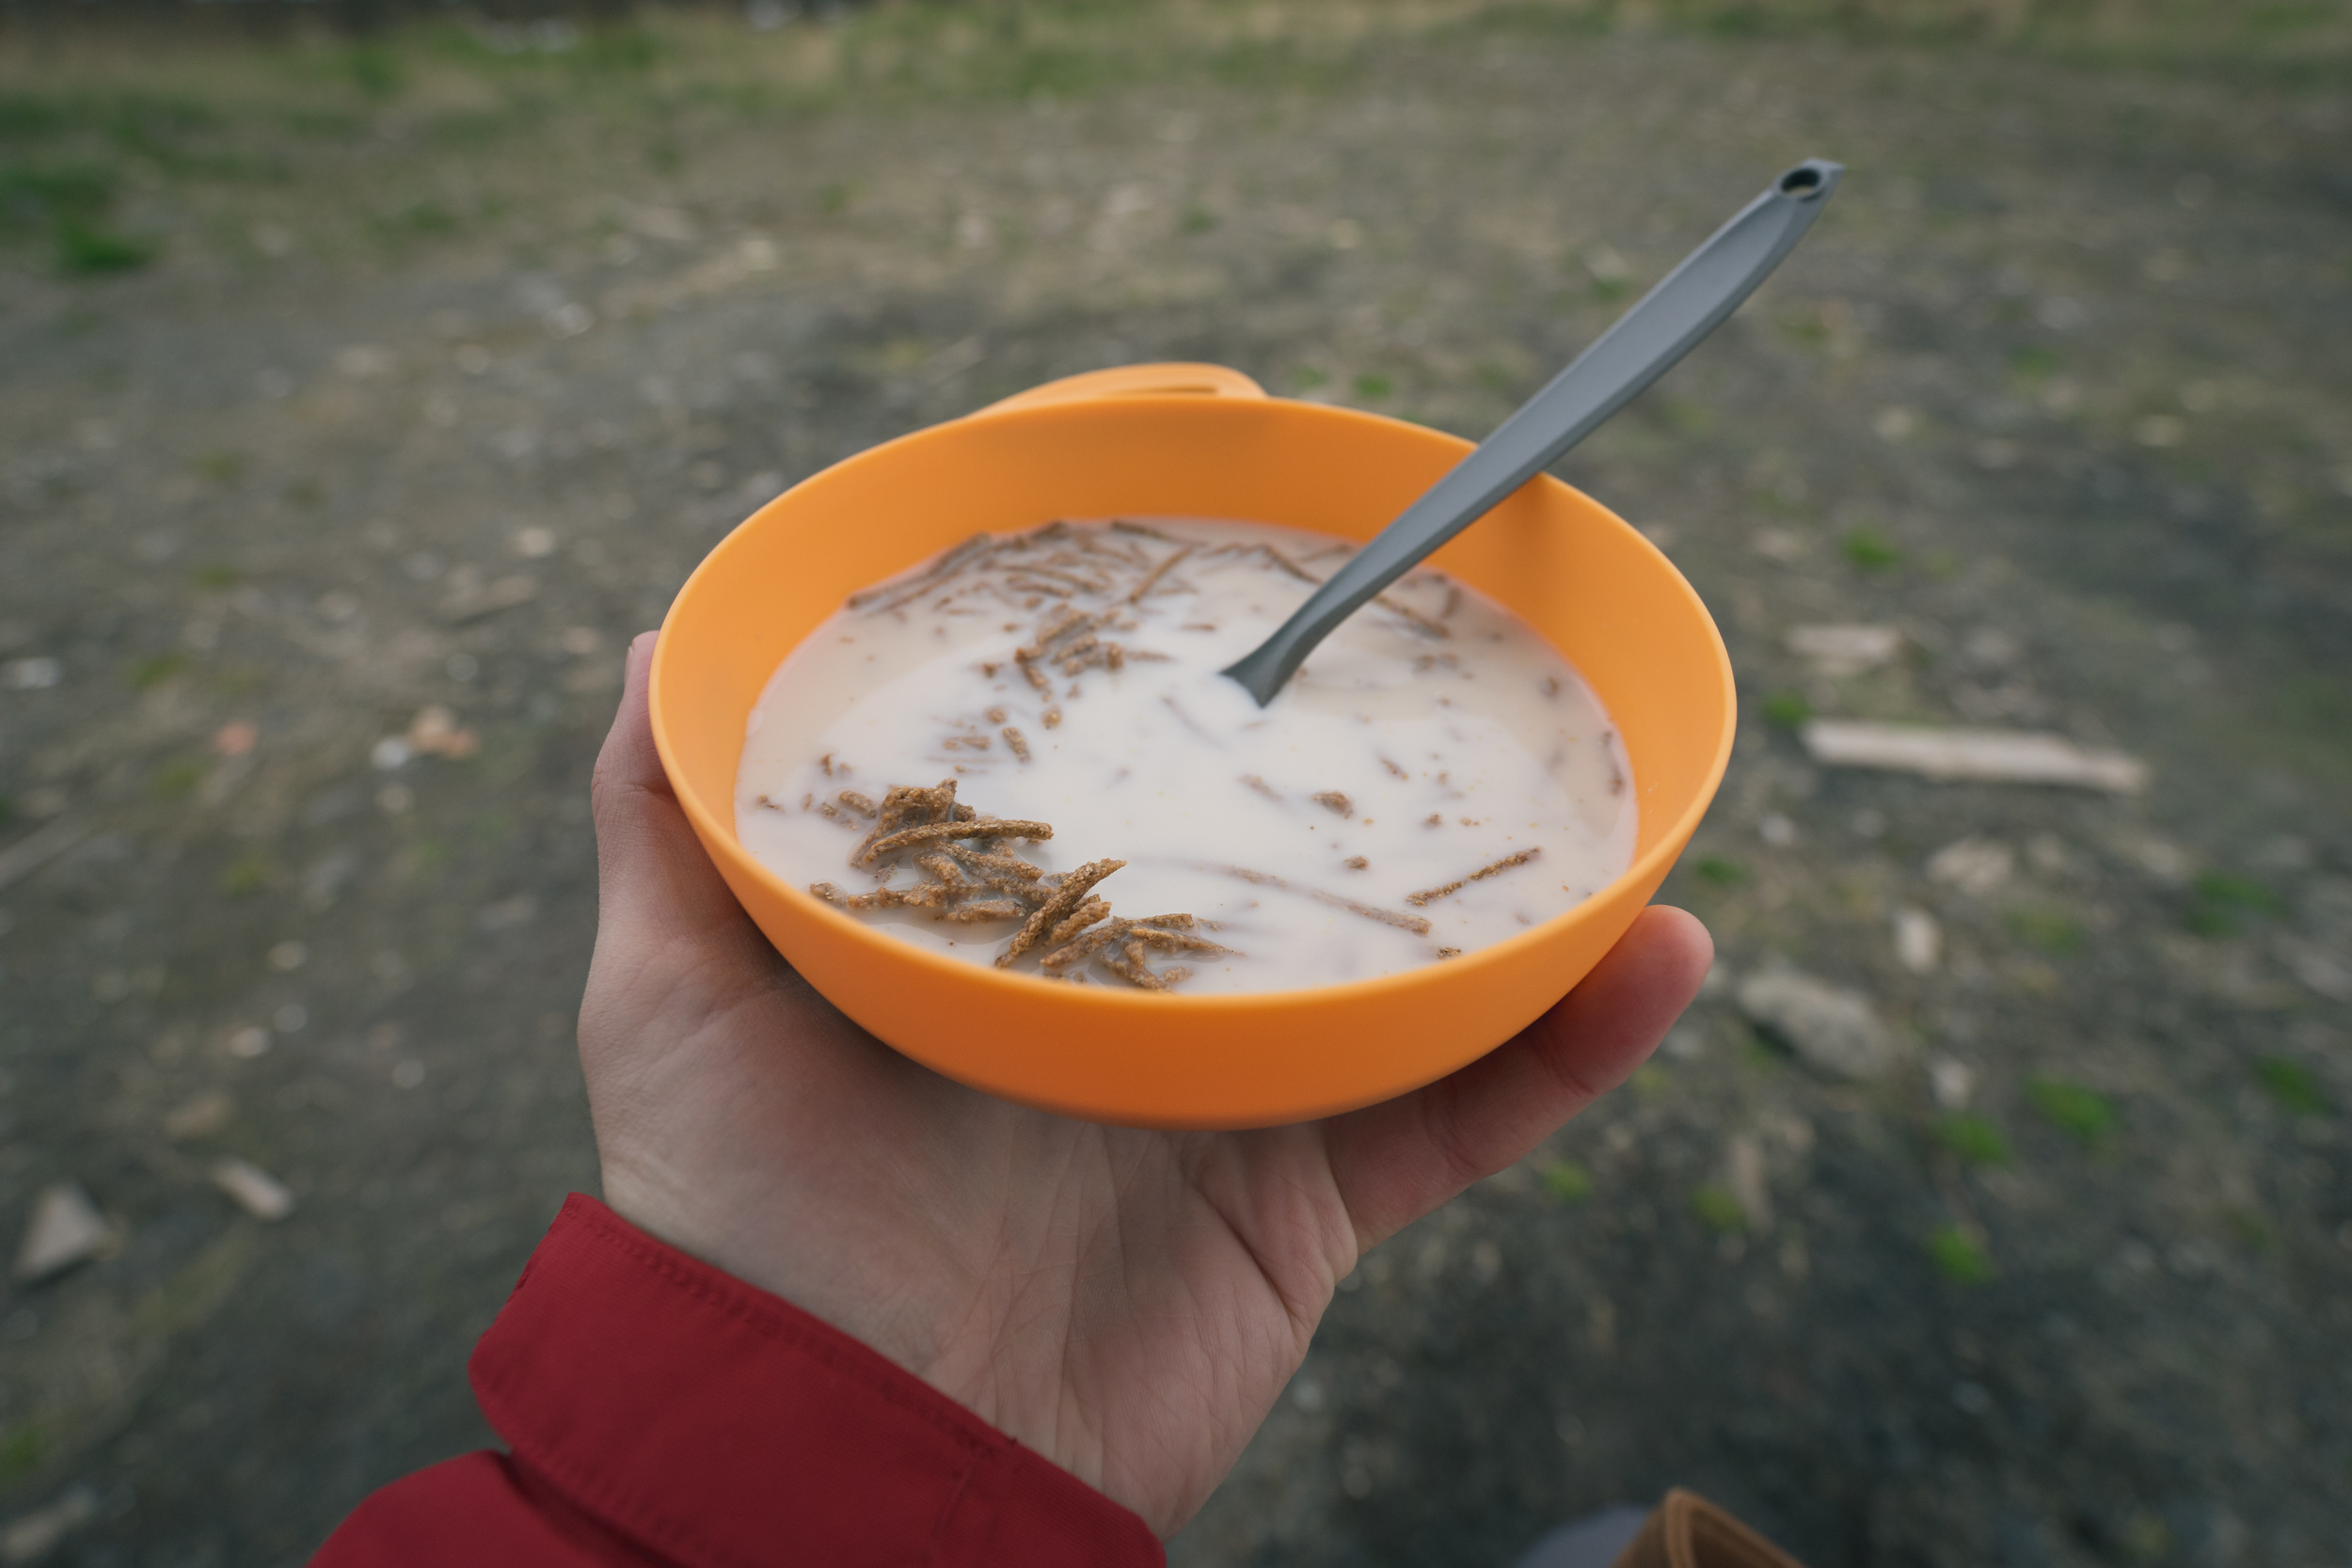 Whole grain cereal with almond hazelnut milk. Actually pretty good.